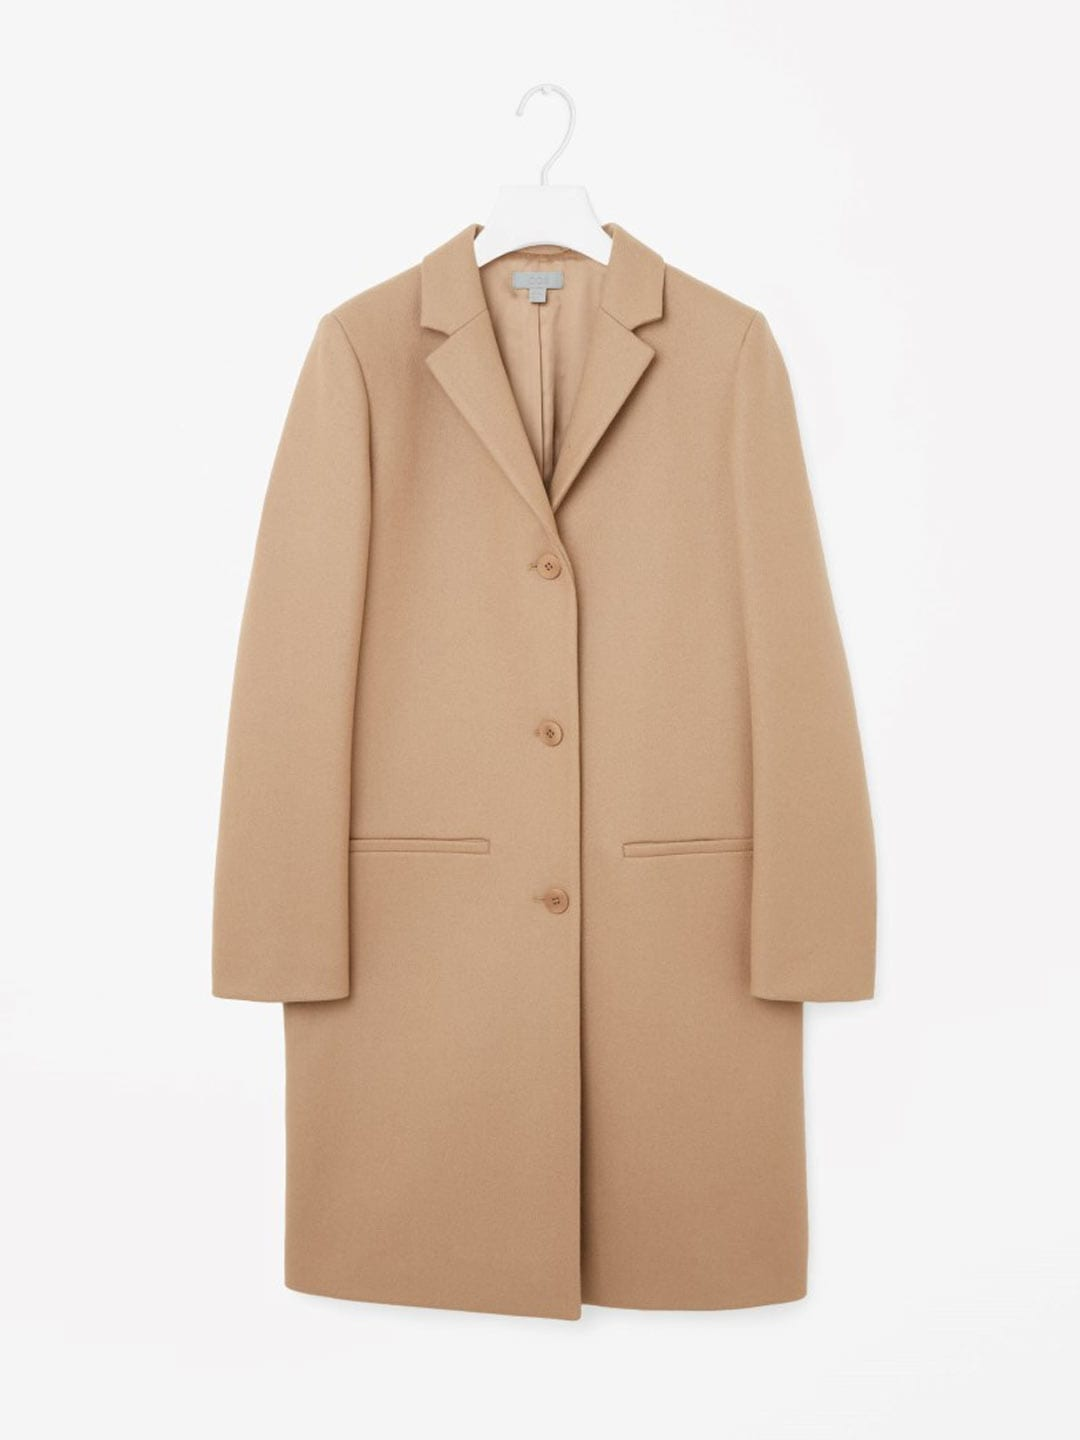 Best Winter Coats | COS Tailored Wool Camel Coat